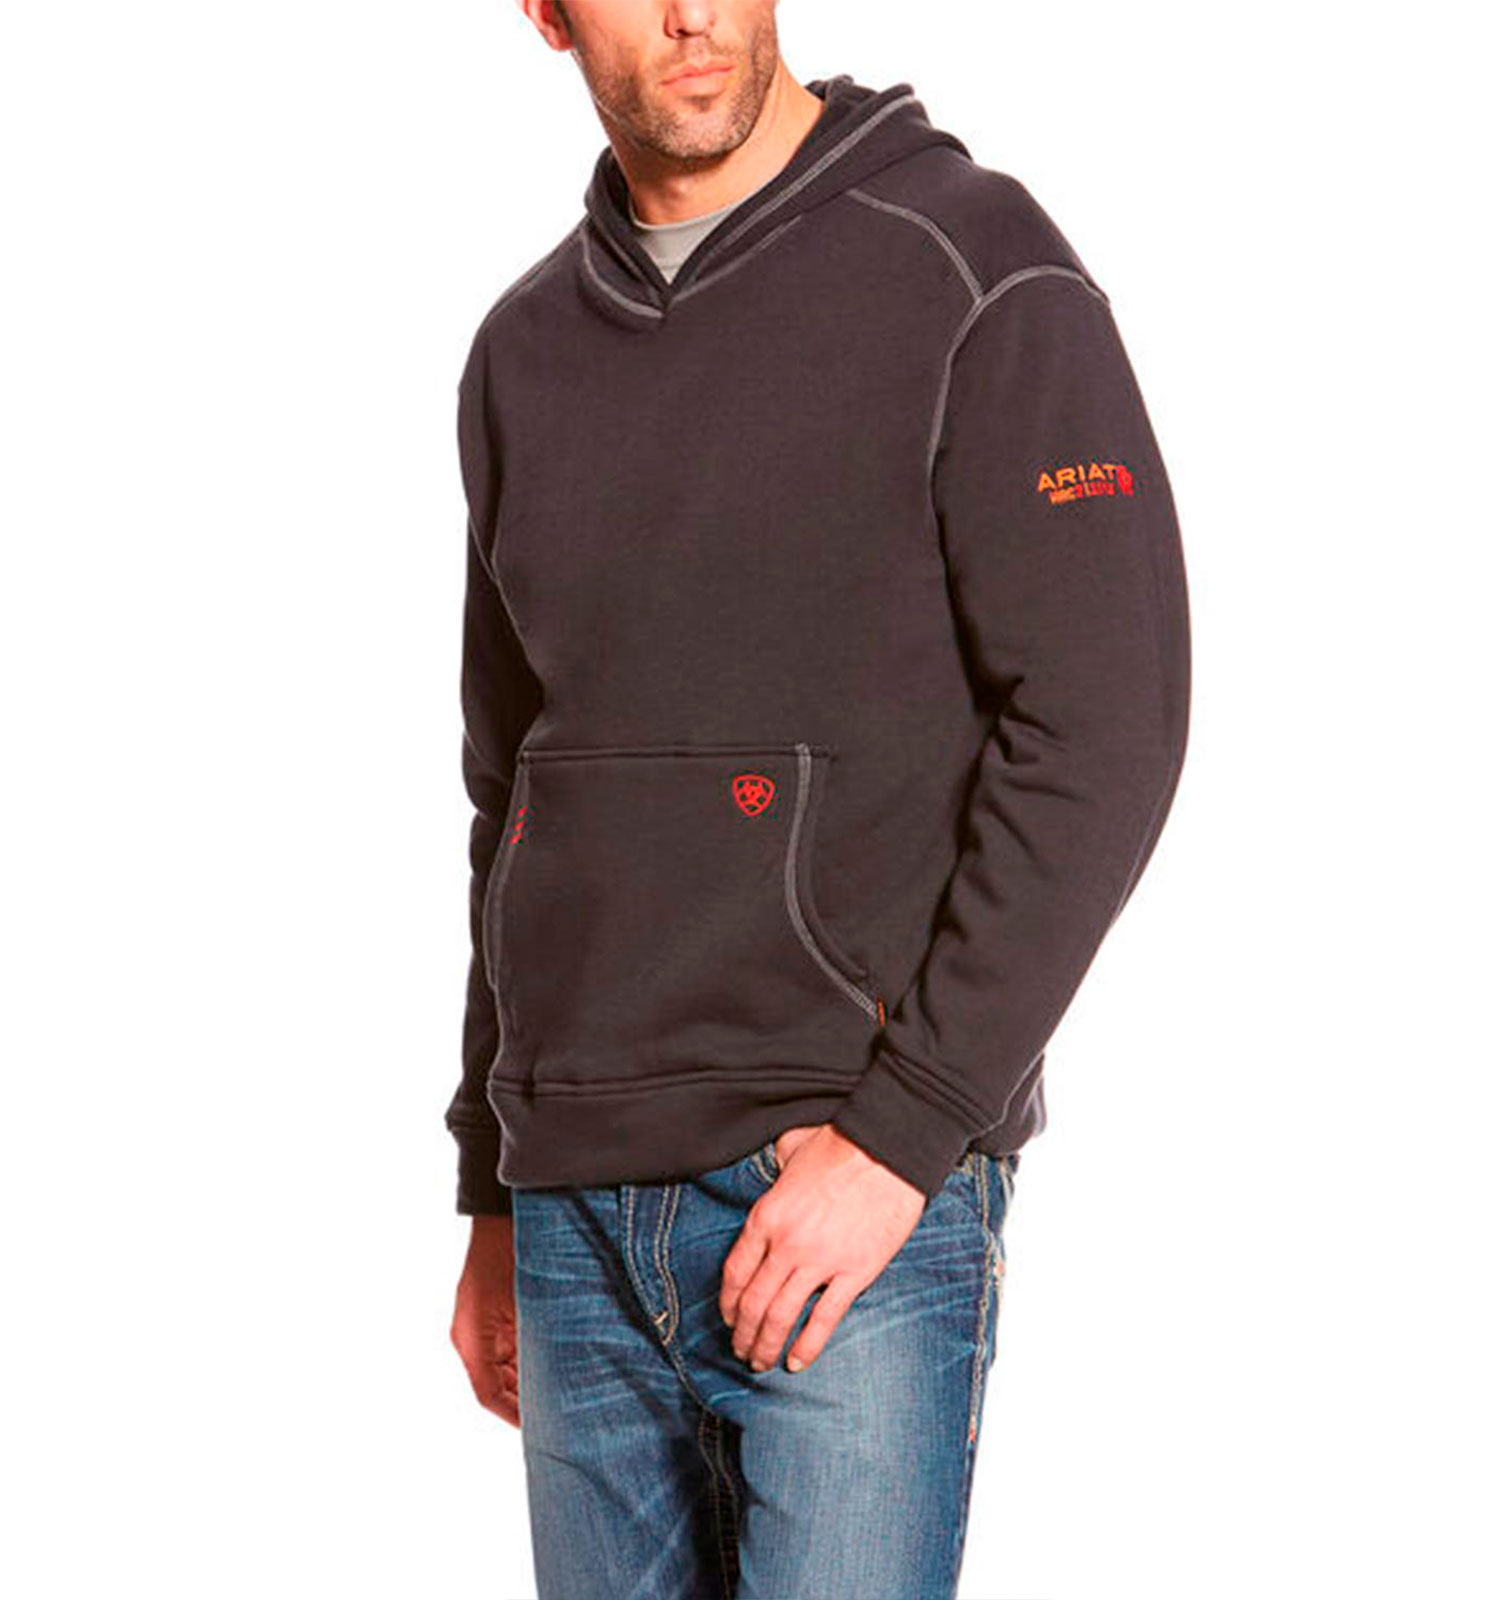 Ariat-FR-Polartec-Hoodie-heather-black-front